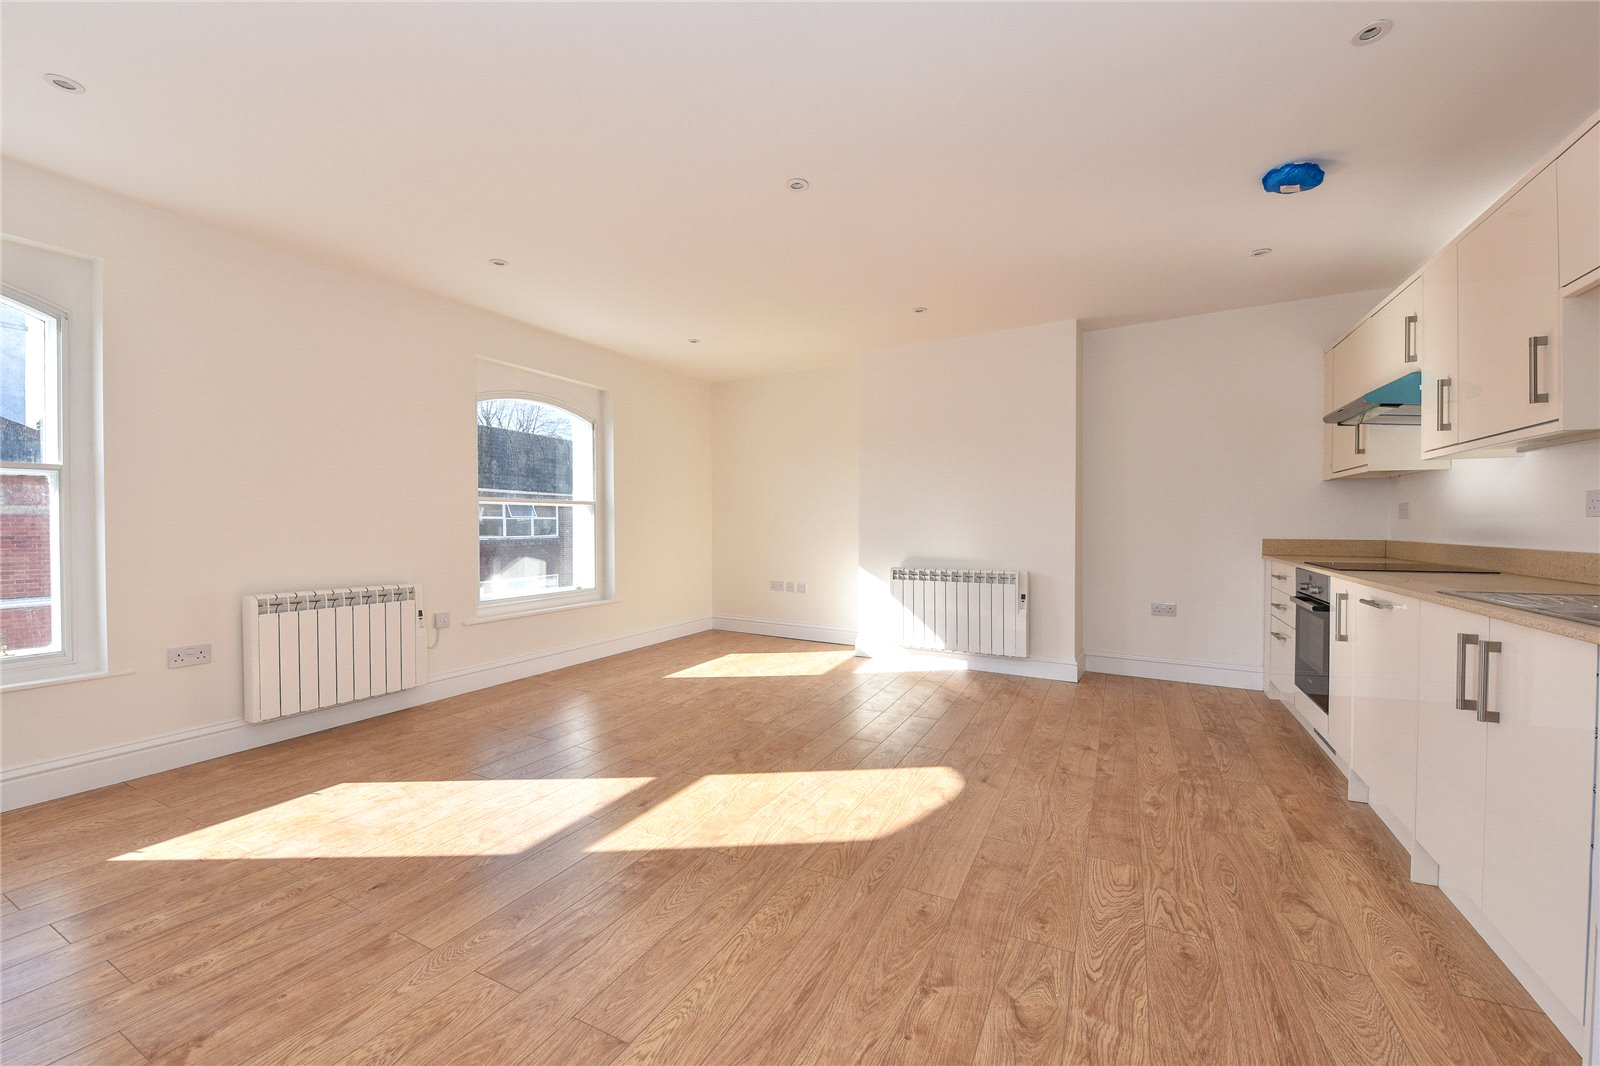 Apartment D – 2 Bedroom First Flooor - £249,950 - Available